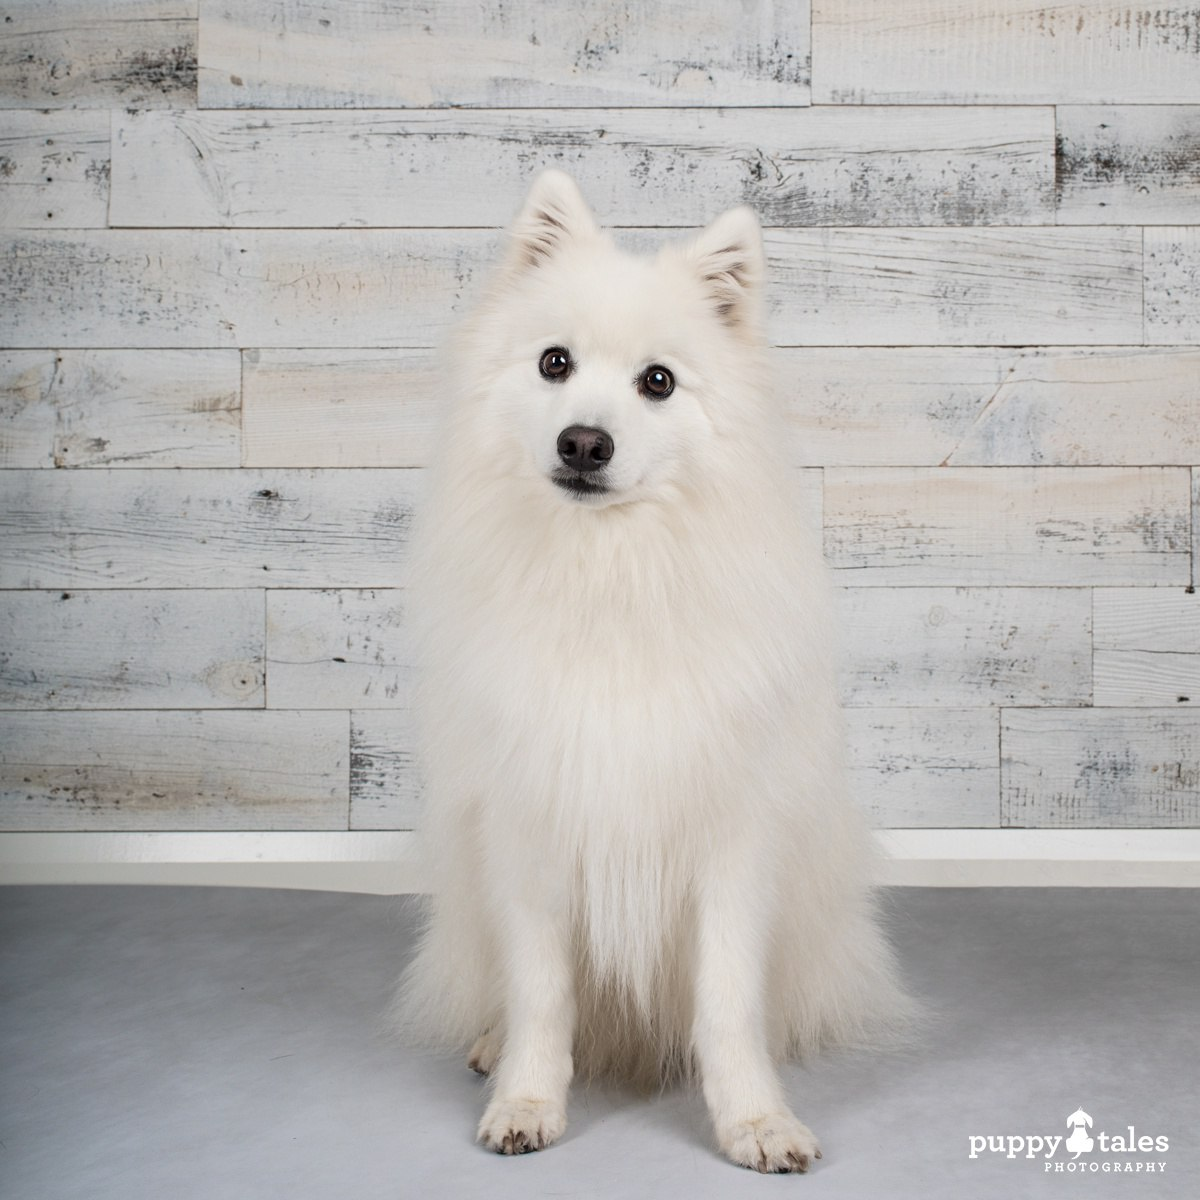 Keiko the Japanese Spitz in the Dogalogue of Australia